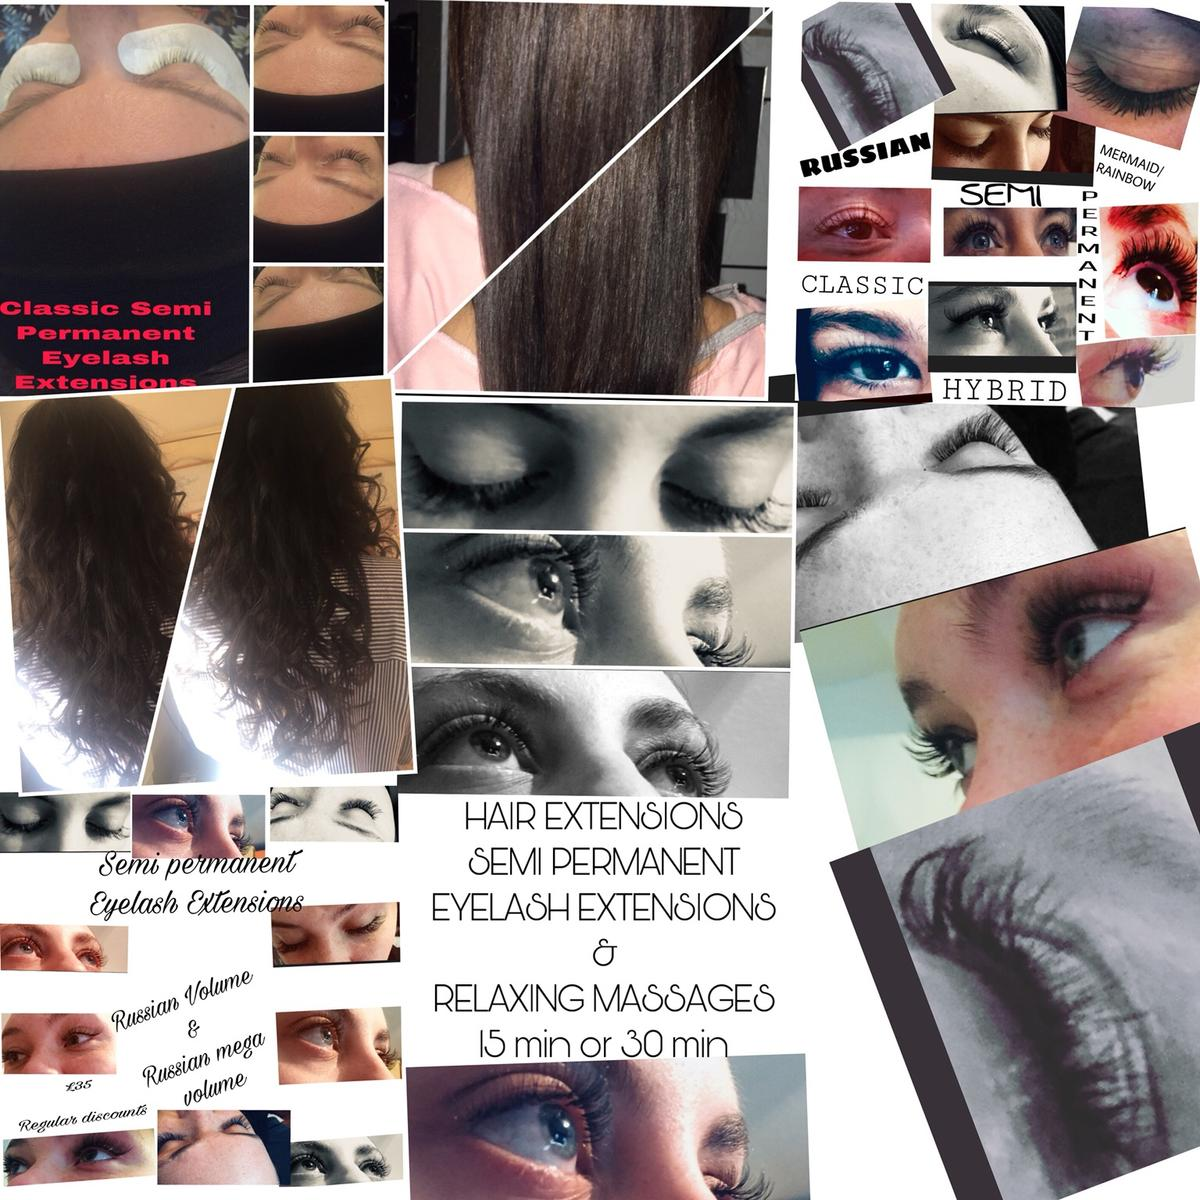 eae2302ee78 HAIR EXTENSIONS SEMI PERM EYELASH EXTENSIONS in Bolton for £20.00 ...